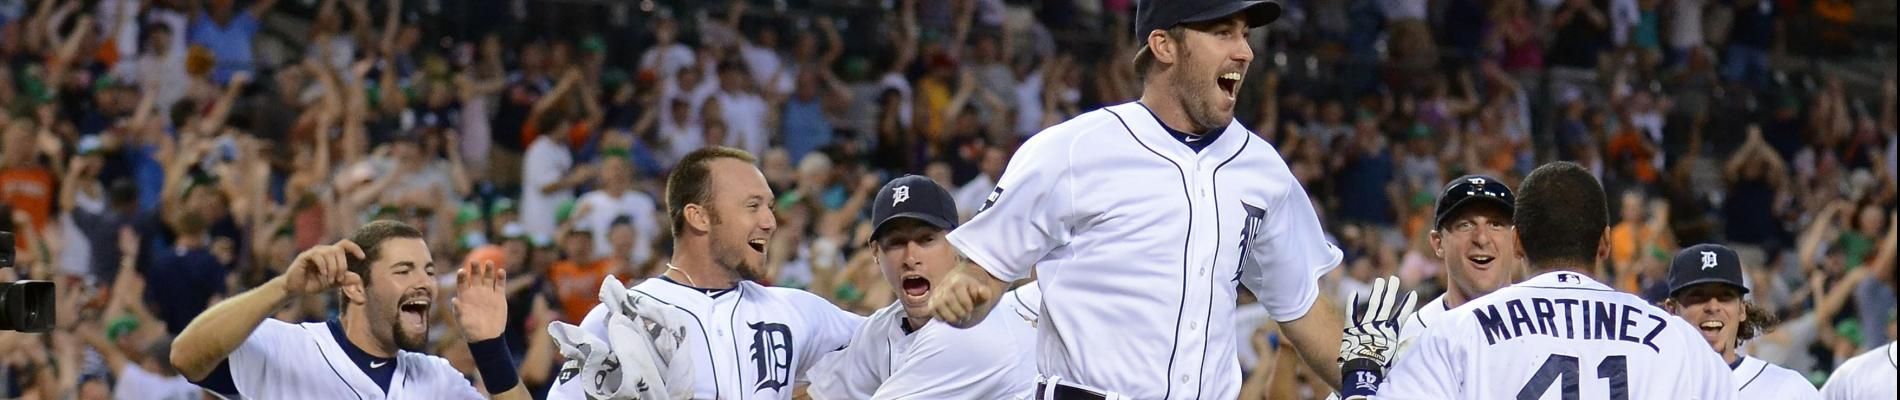 Detroit Tigers Opening Day - at Next!